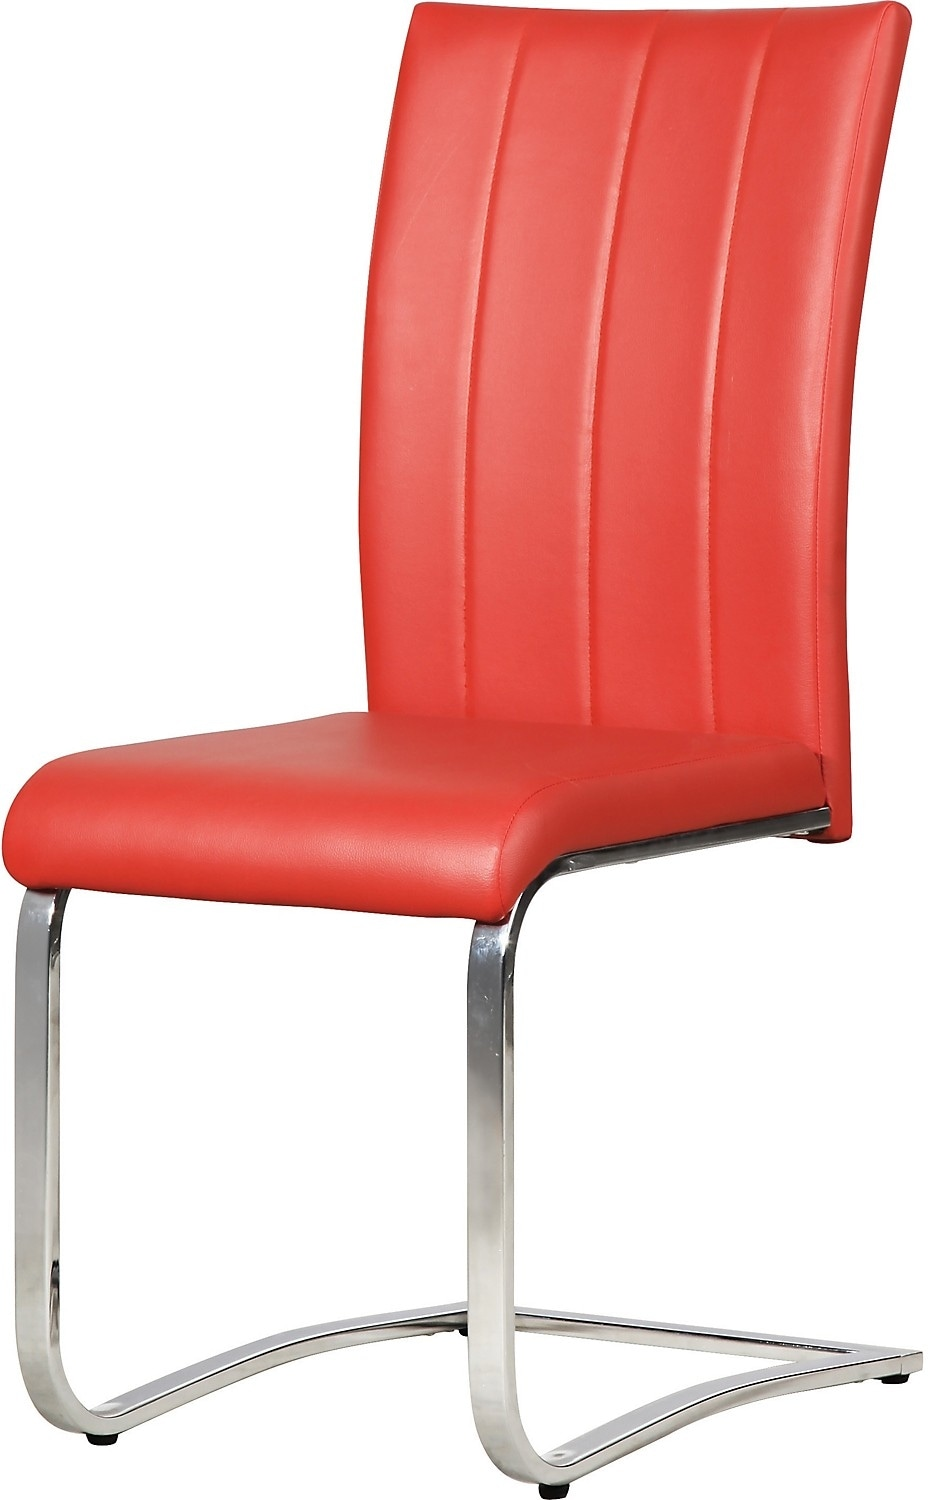 Tori Side Chair – Red